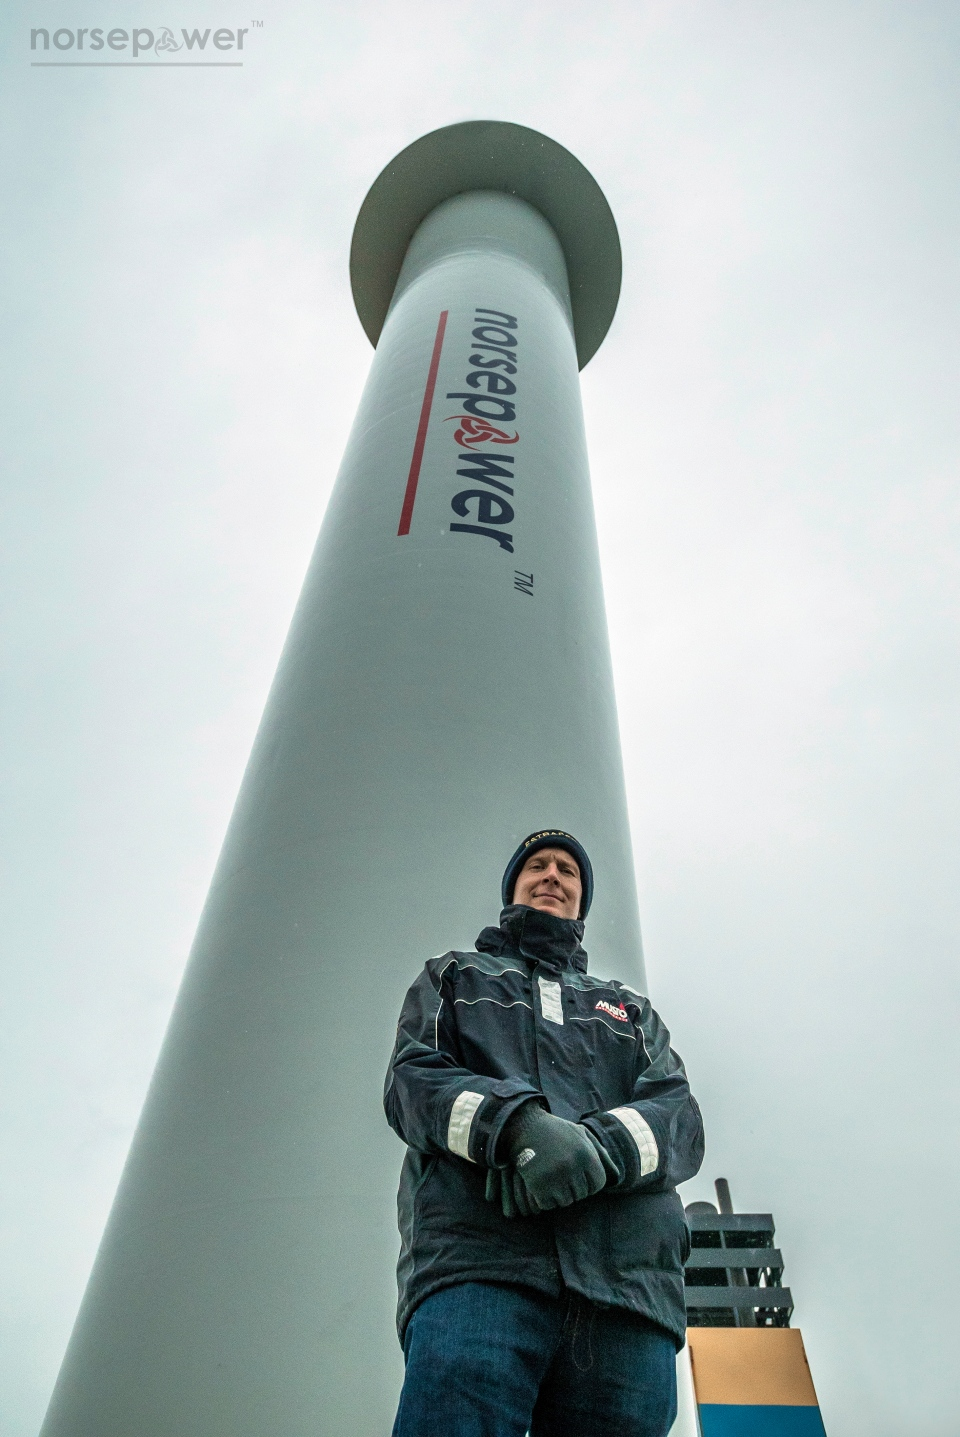 Tuomas Risk, CEO of Finnish startup company Norsepower, poses Nov. 2016, in the North Sea, in front of one of his company's rotor sails, one of the new technologies the shipping industry is looking at as it searches for new solutions to cut greenhouse gas emissions to combat climate change. (Norsepower via AP)